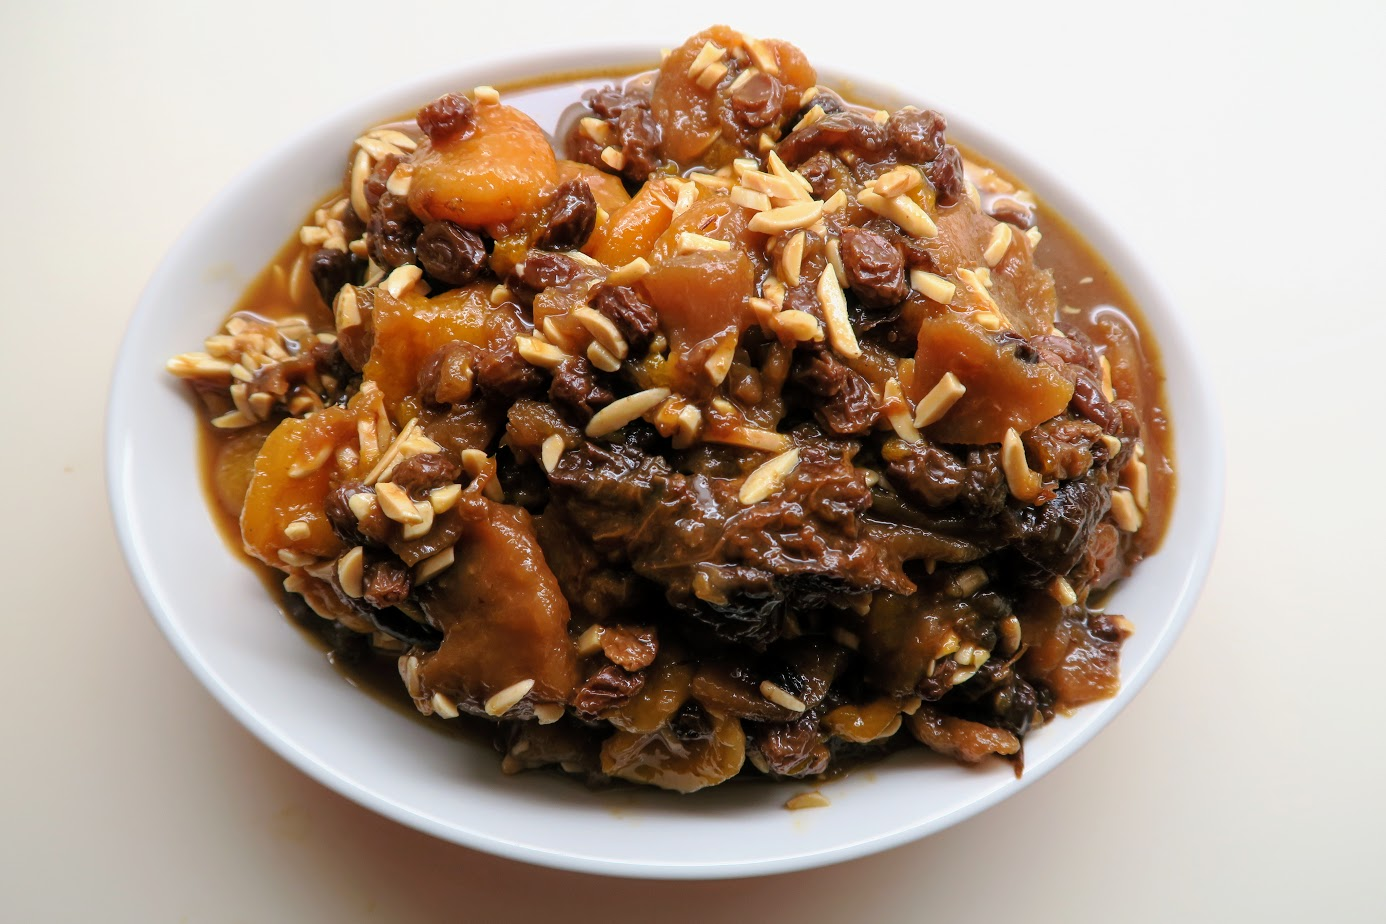 Compote - stewed fruit with almonds ready to serve